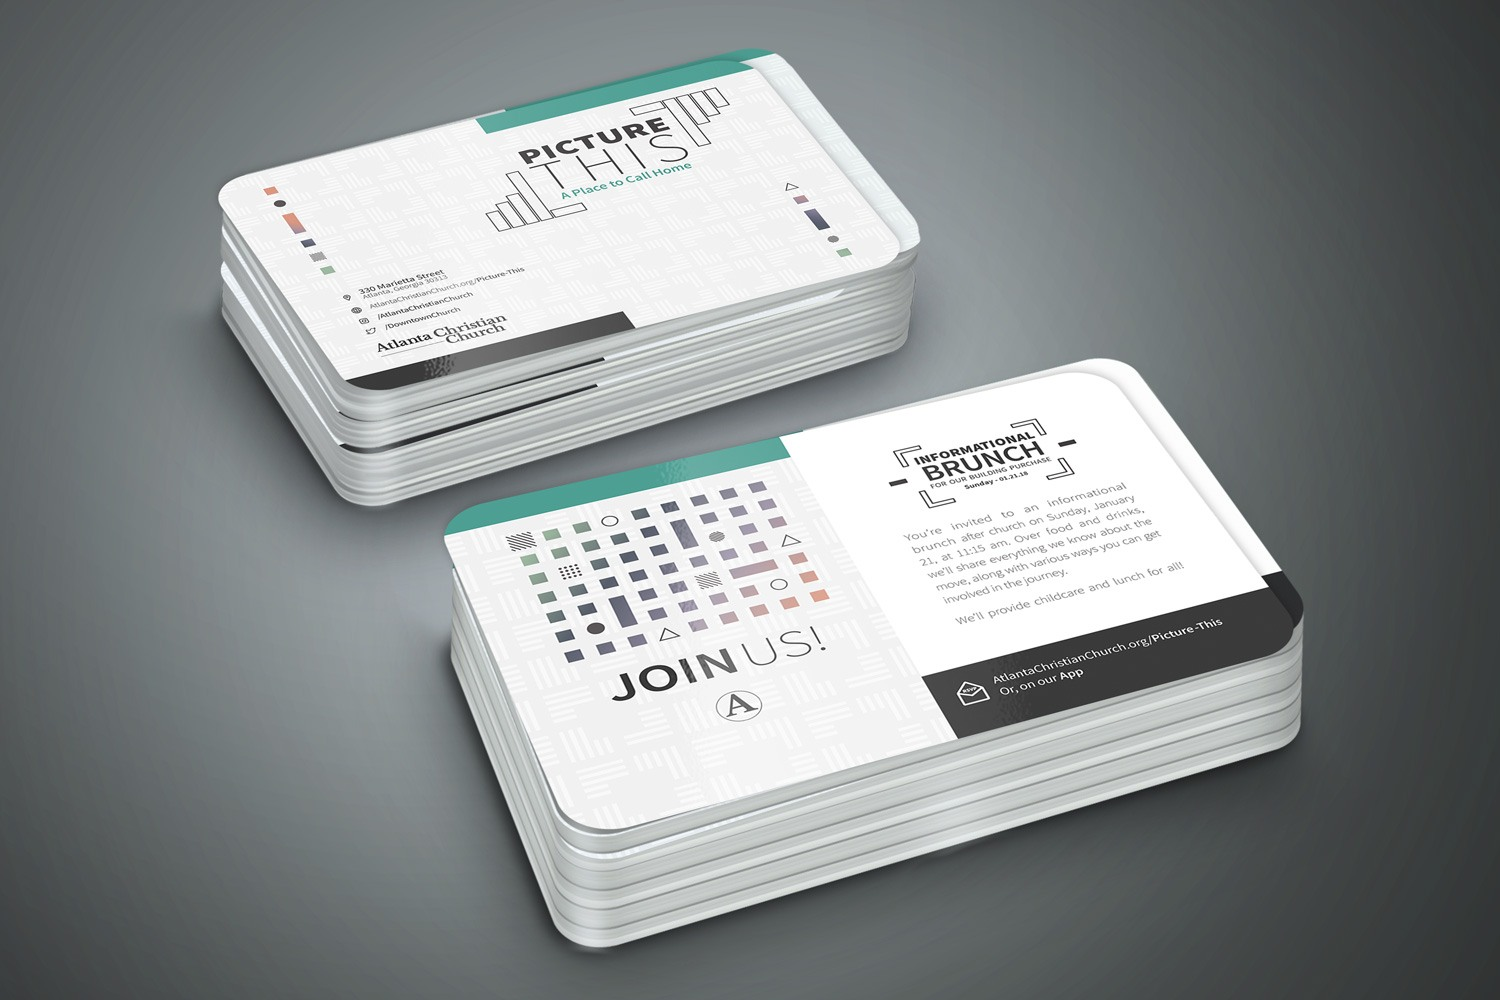 Church postcards minimalist design and printing marketing & outreach ideas